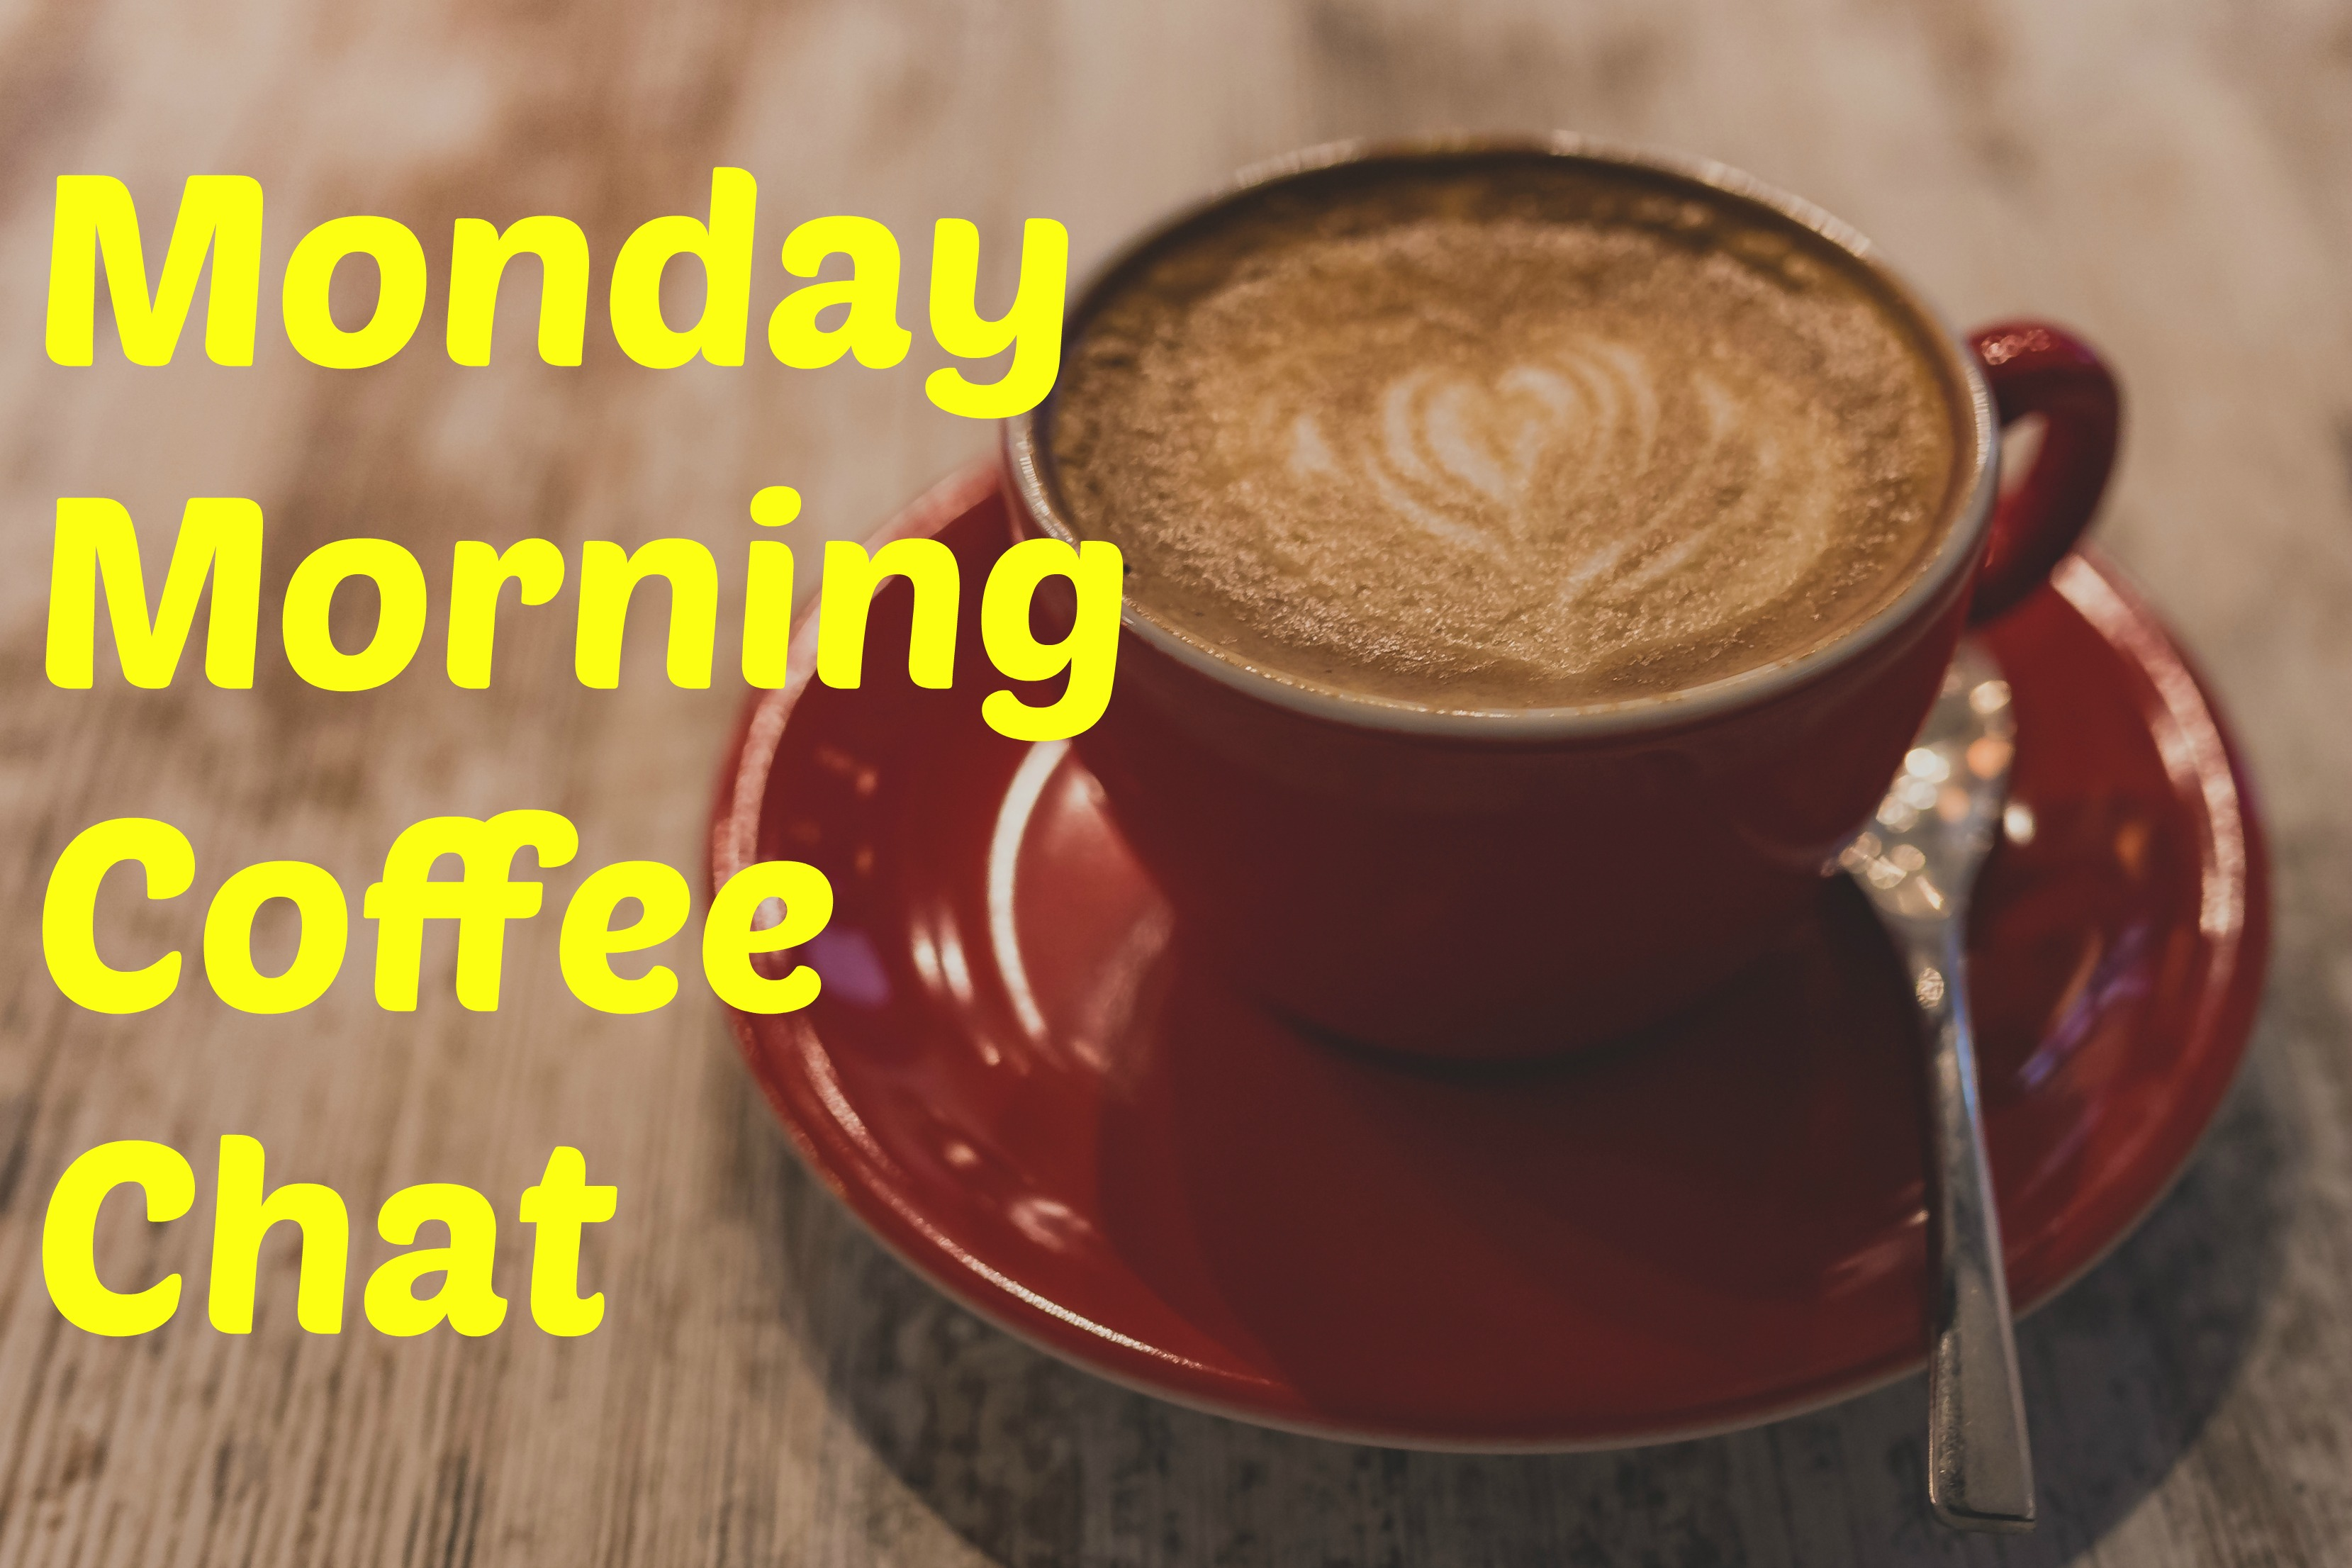 Monday Morning Coffee Chat